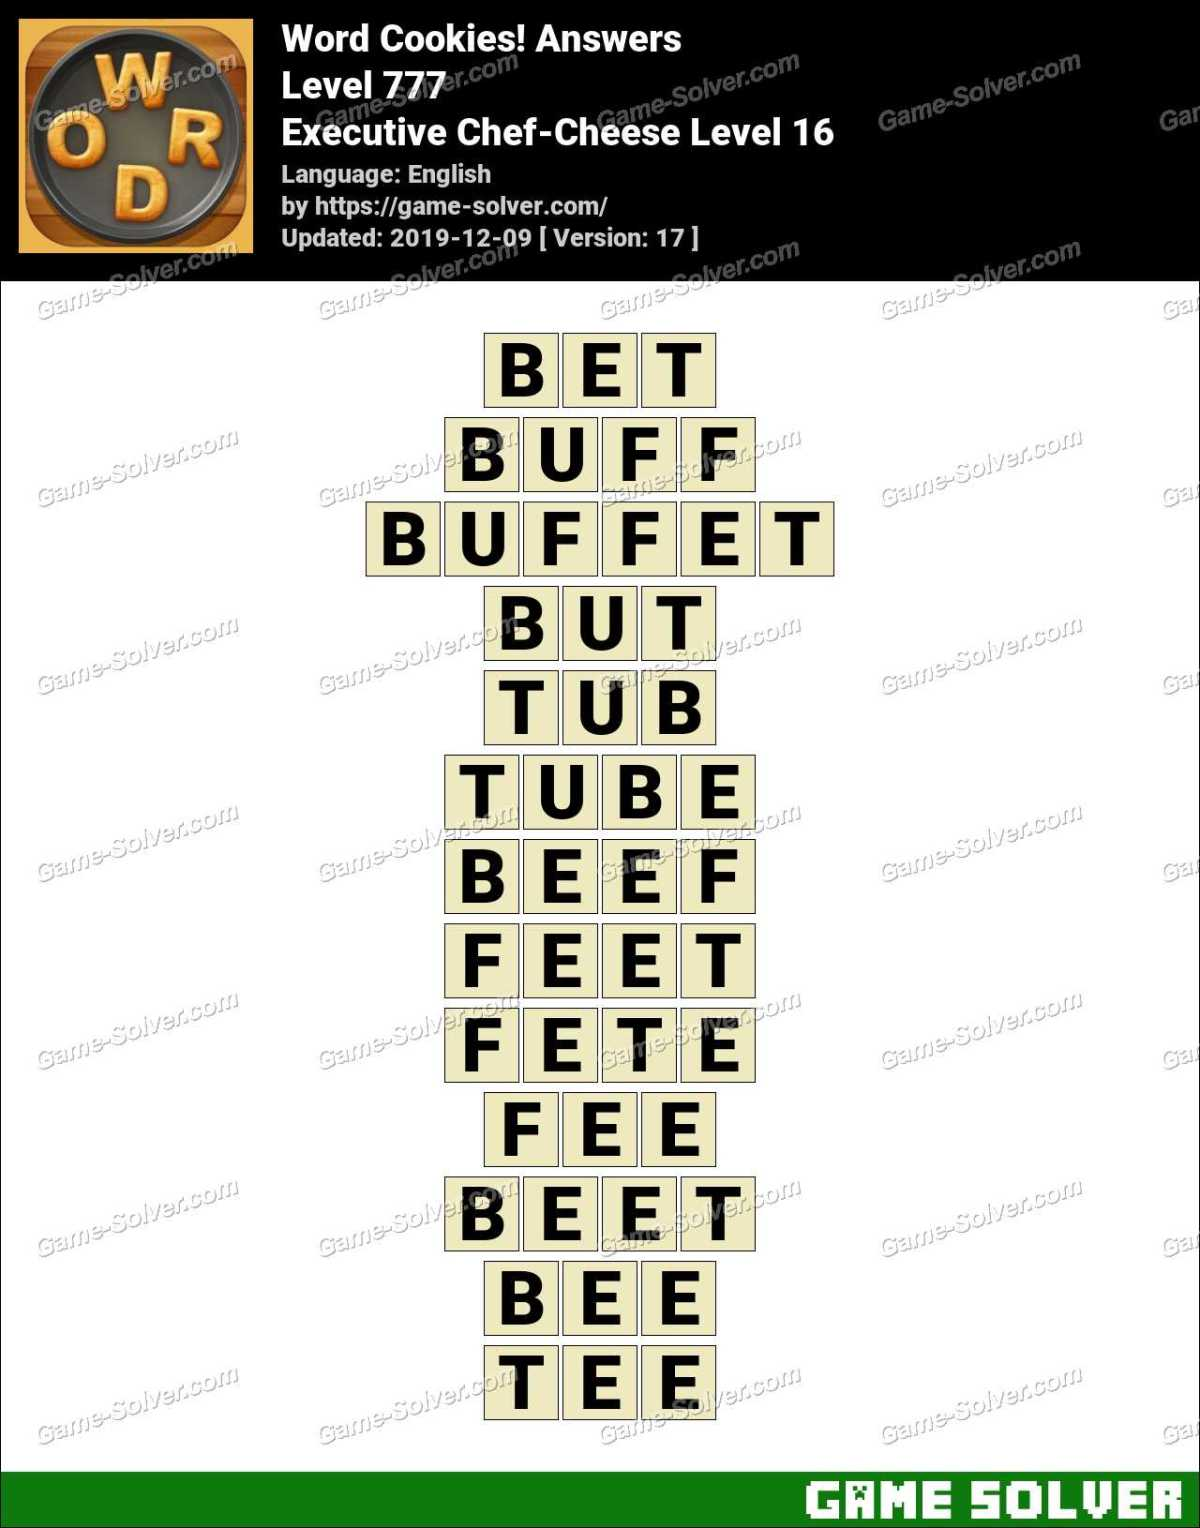 Word Cookies Executive Chef-Cheese Level 16 Answers